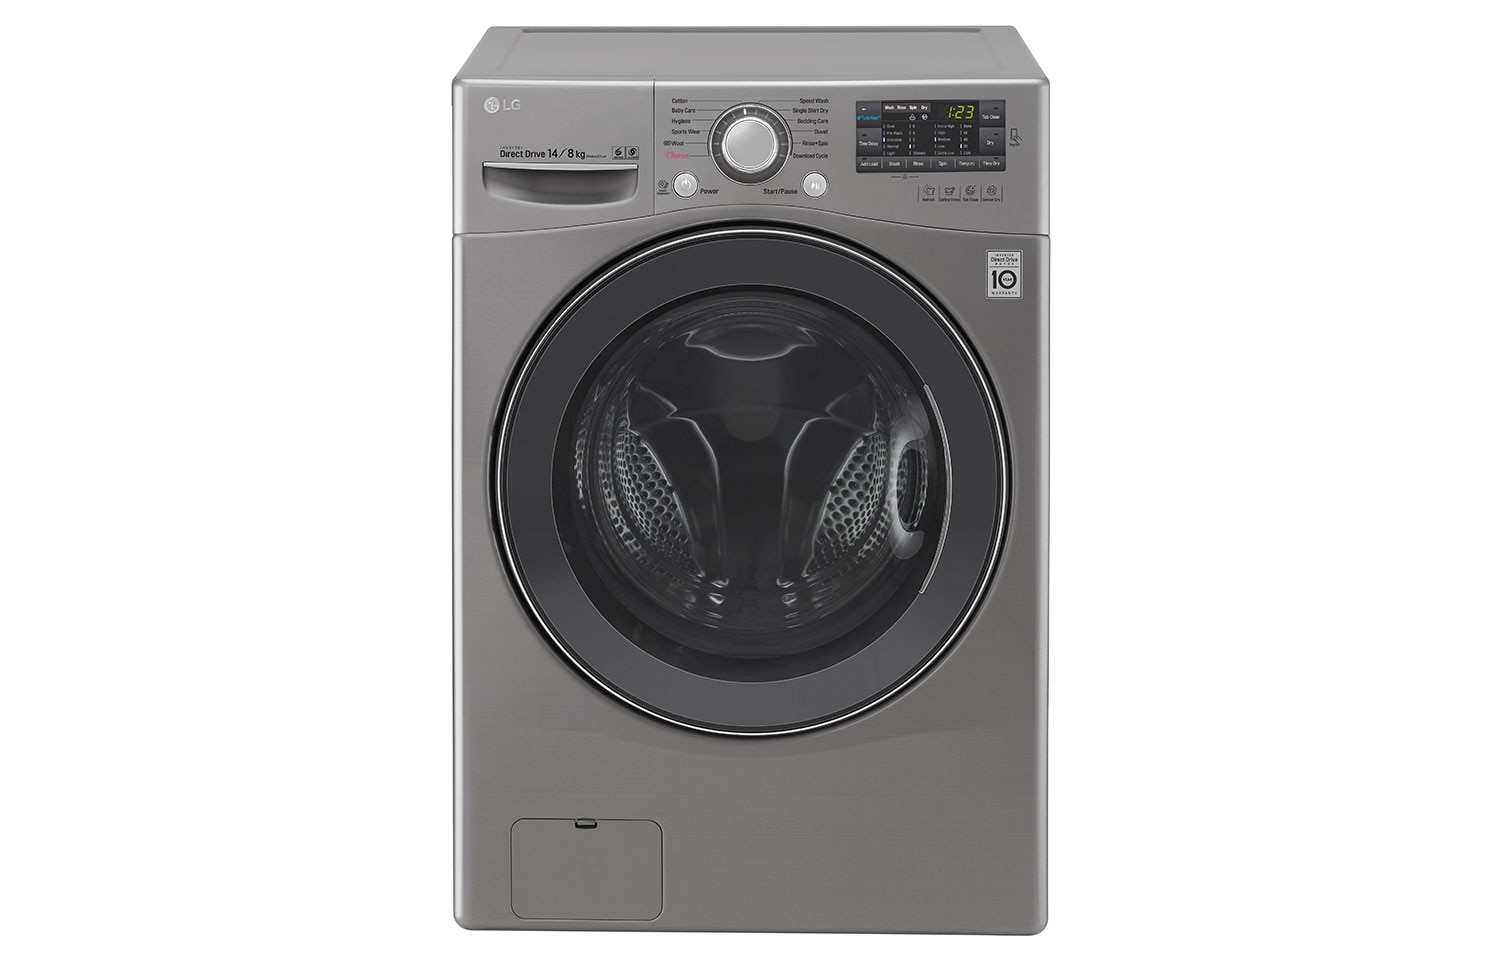 Lg 14 8kg Inverter Direct Drive Washer Dryer Lg Malaysia